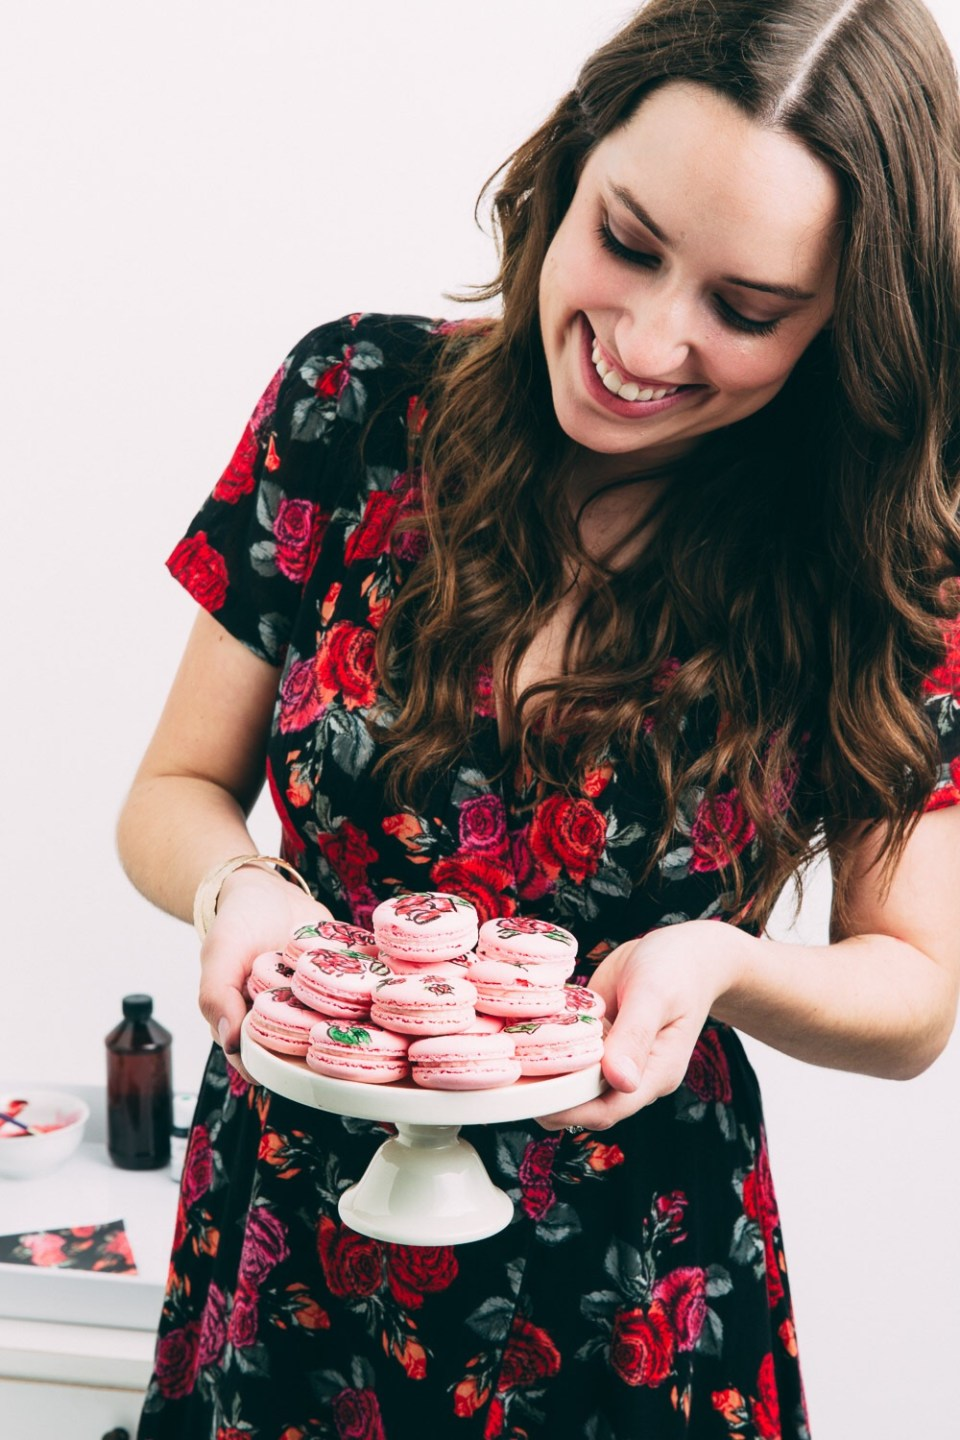 how to make macarons, rose macarons, diy painted macarons, how to food paint macarons